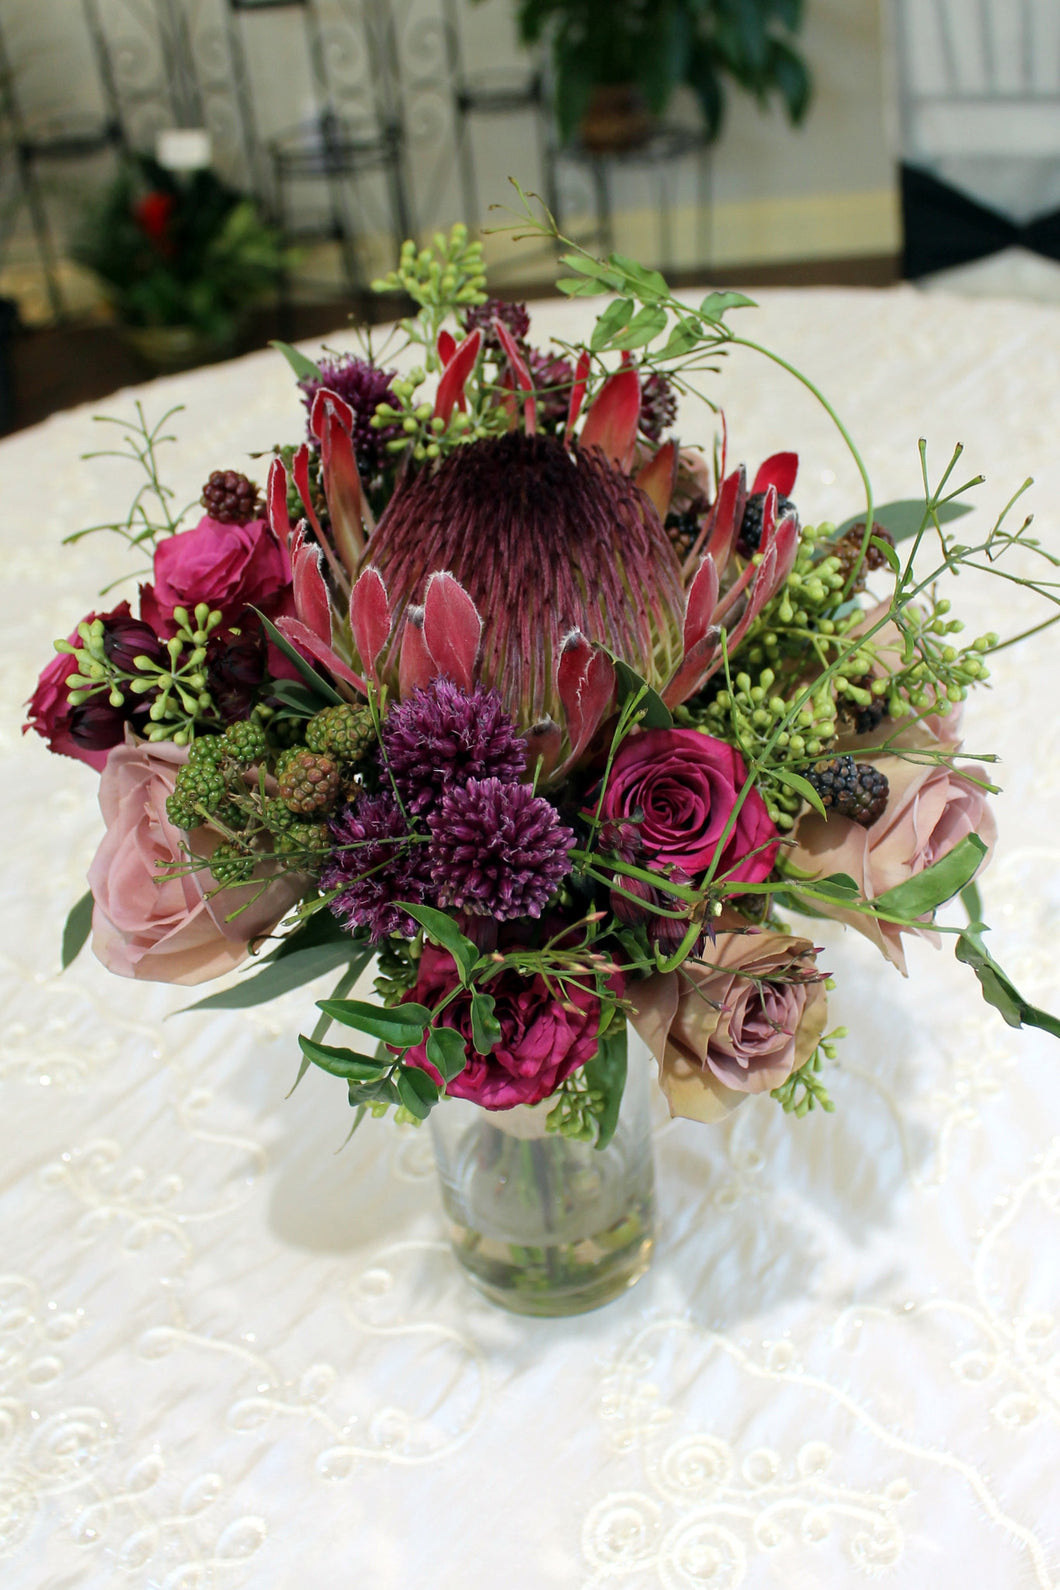 Marsala Protea Bouquet - The Blooming Idea Florst - The Woodlands, Texas